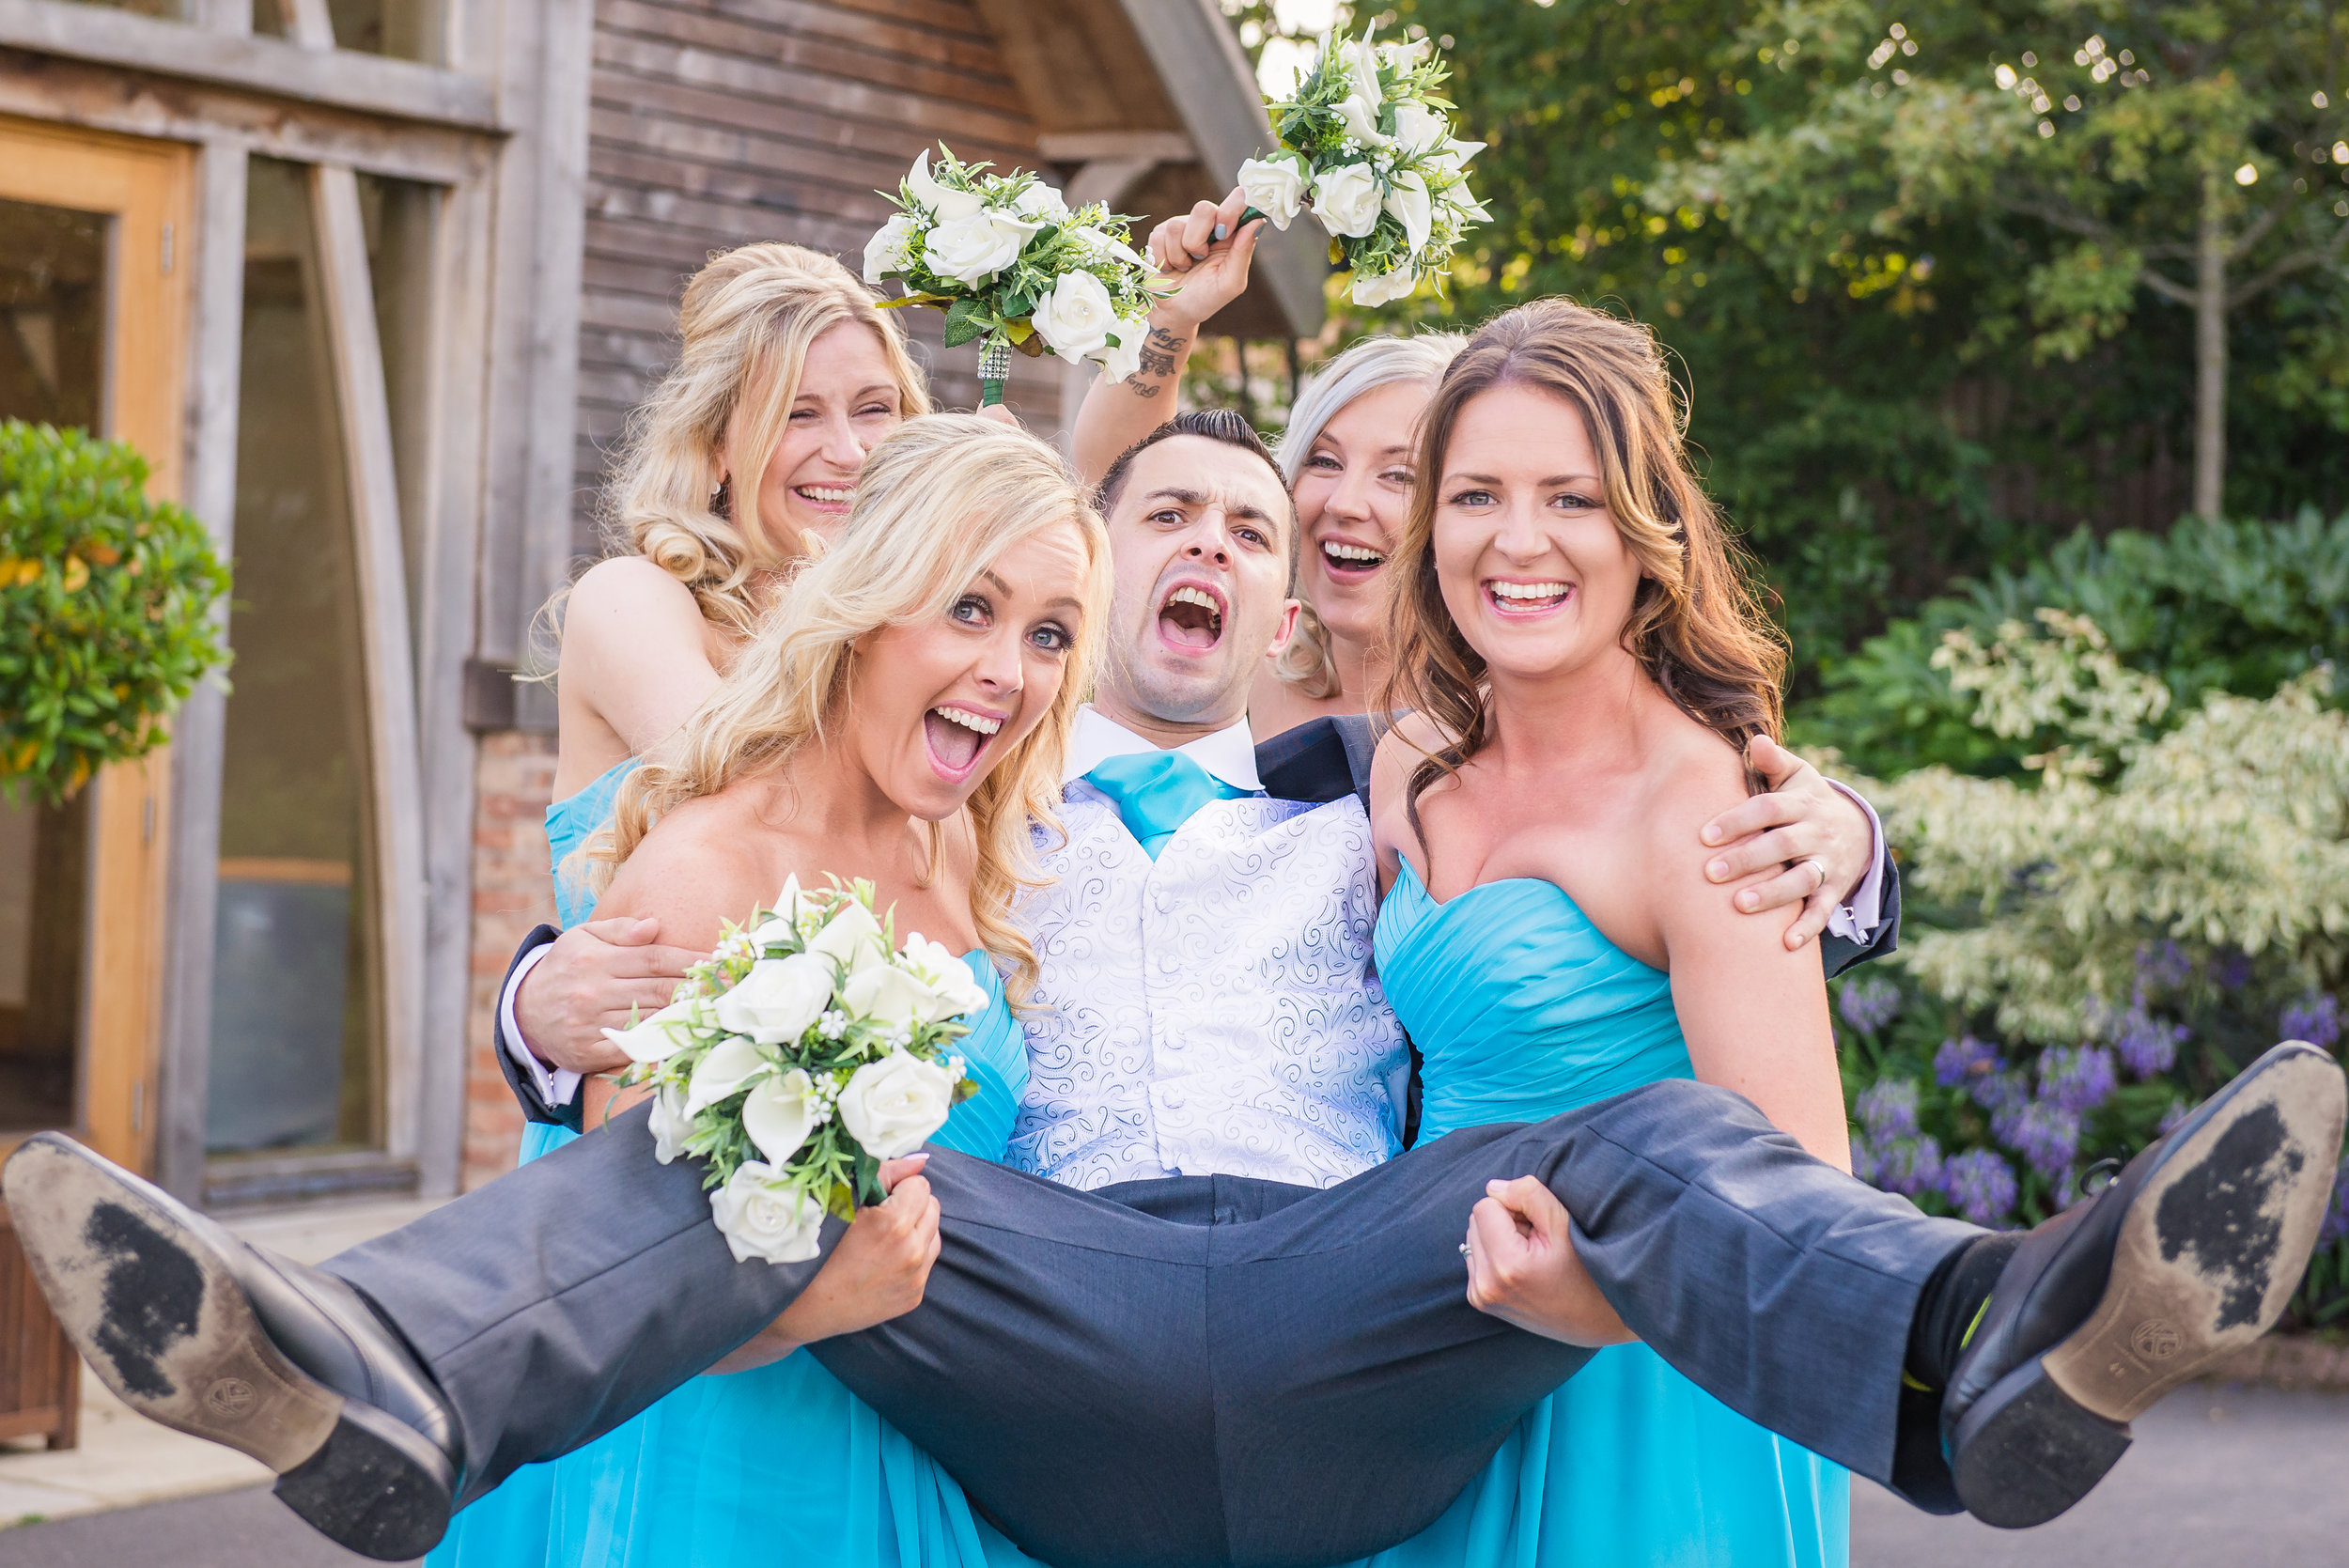 Wedding Family & Formal Gallery - Family and formal photography can be a lot of fun. I love capturing moments between loved ones that families would be proud to showcase on a canvas on their walls